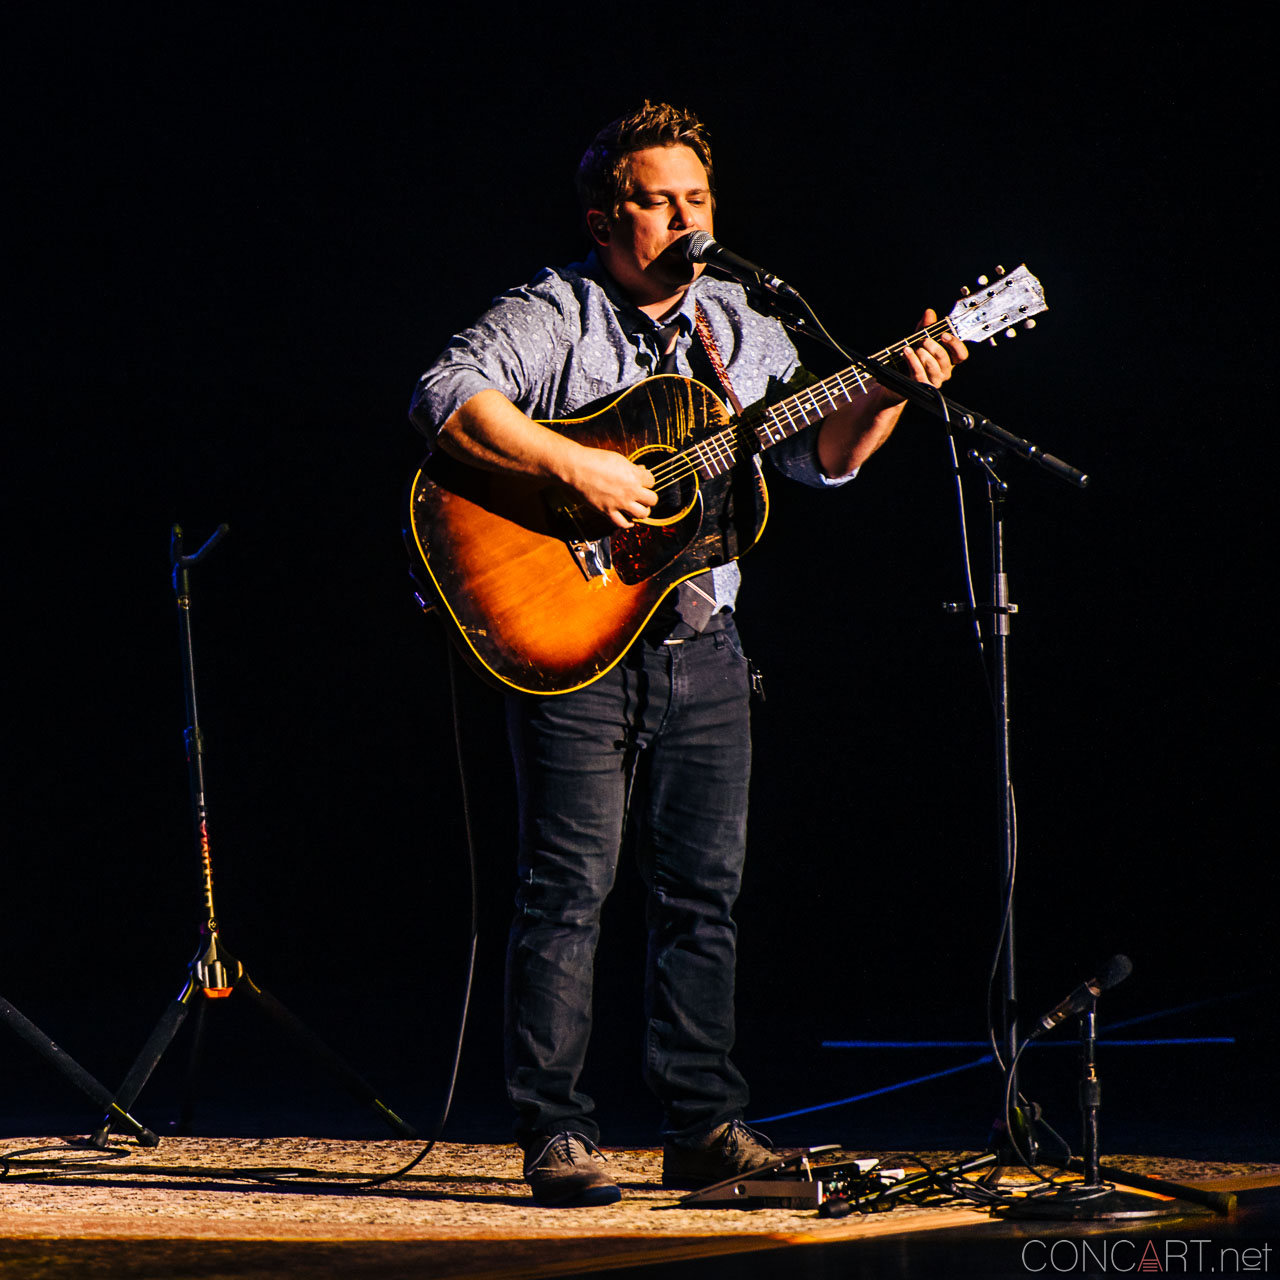 nickel_creek_old_national_centre_murat_theatre_indianapolis_2014-06